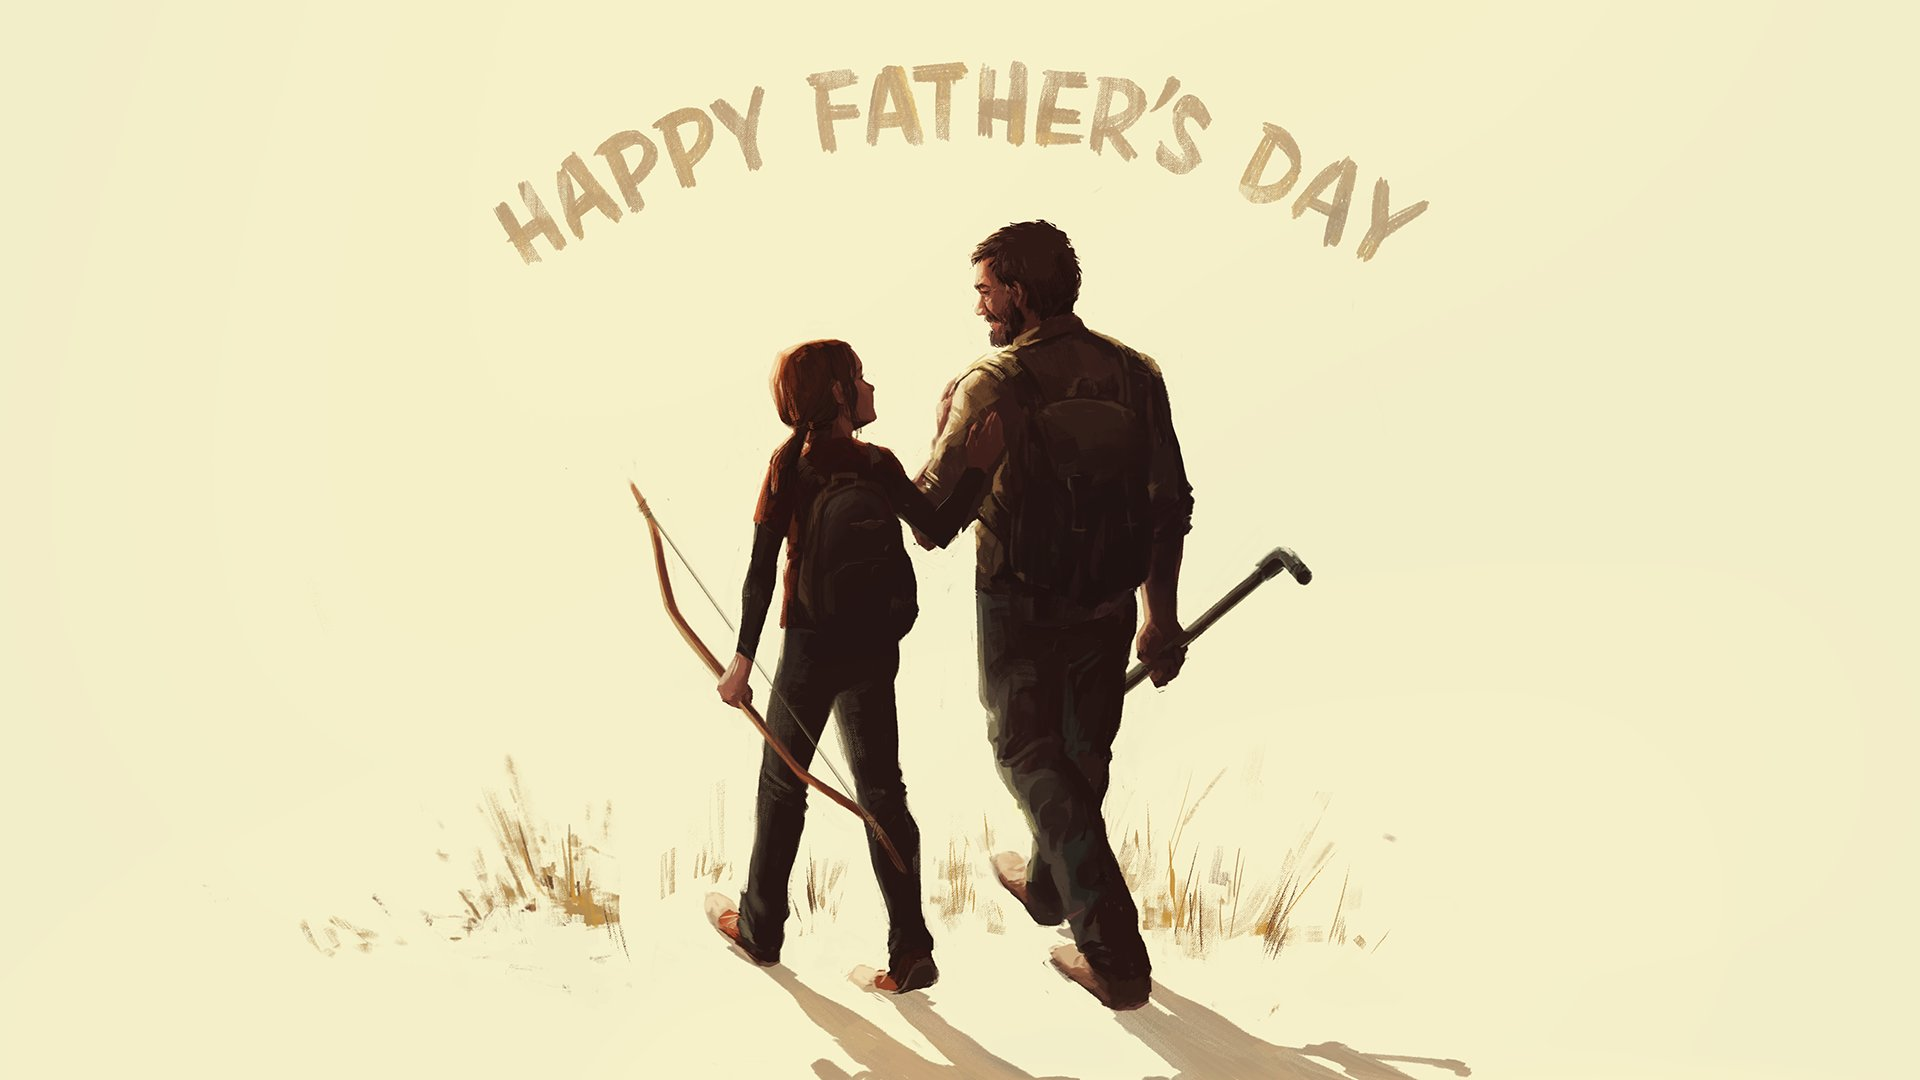 To all those that help us find something to fight for, Happy #FathersDay!   Art by @lilynishita https://t.co/5UCOisRHdv